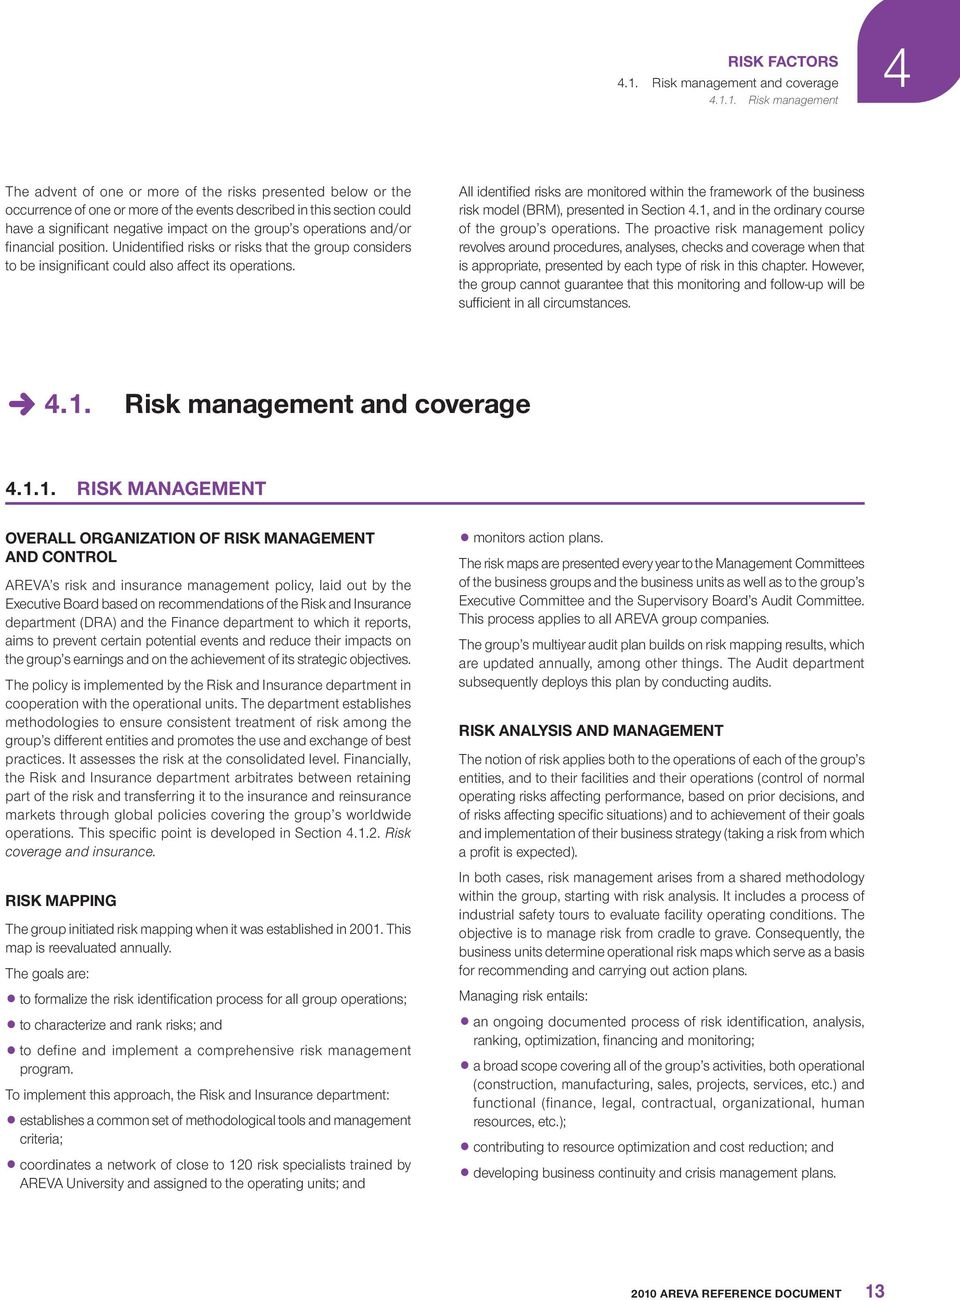 1. Risk management The advent of one or more of the risks presented below or the occurrence of one or more of the events described in this section could have a signifi cant negative impact on the